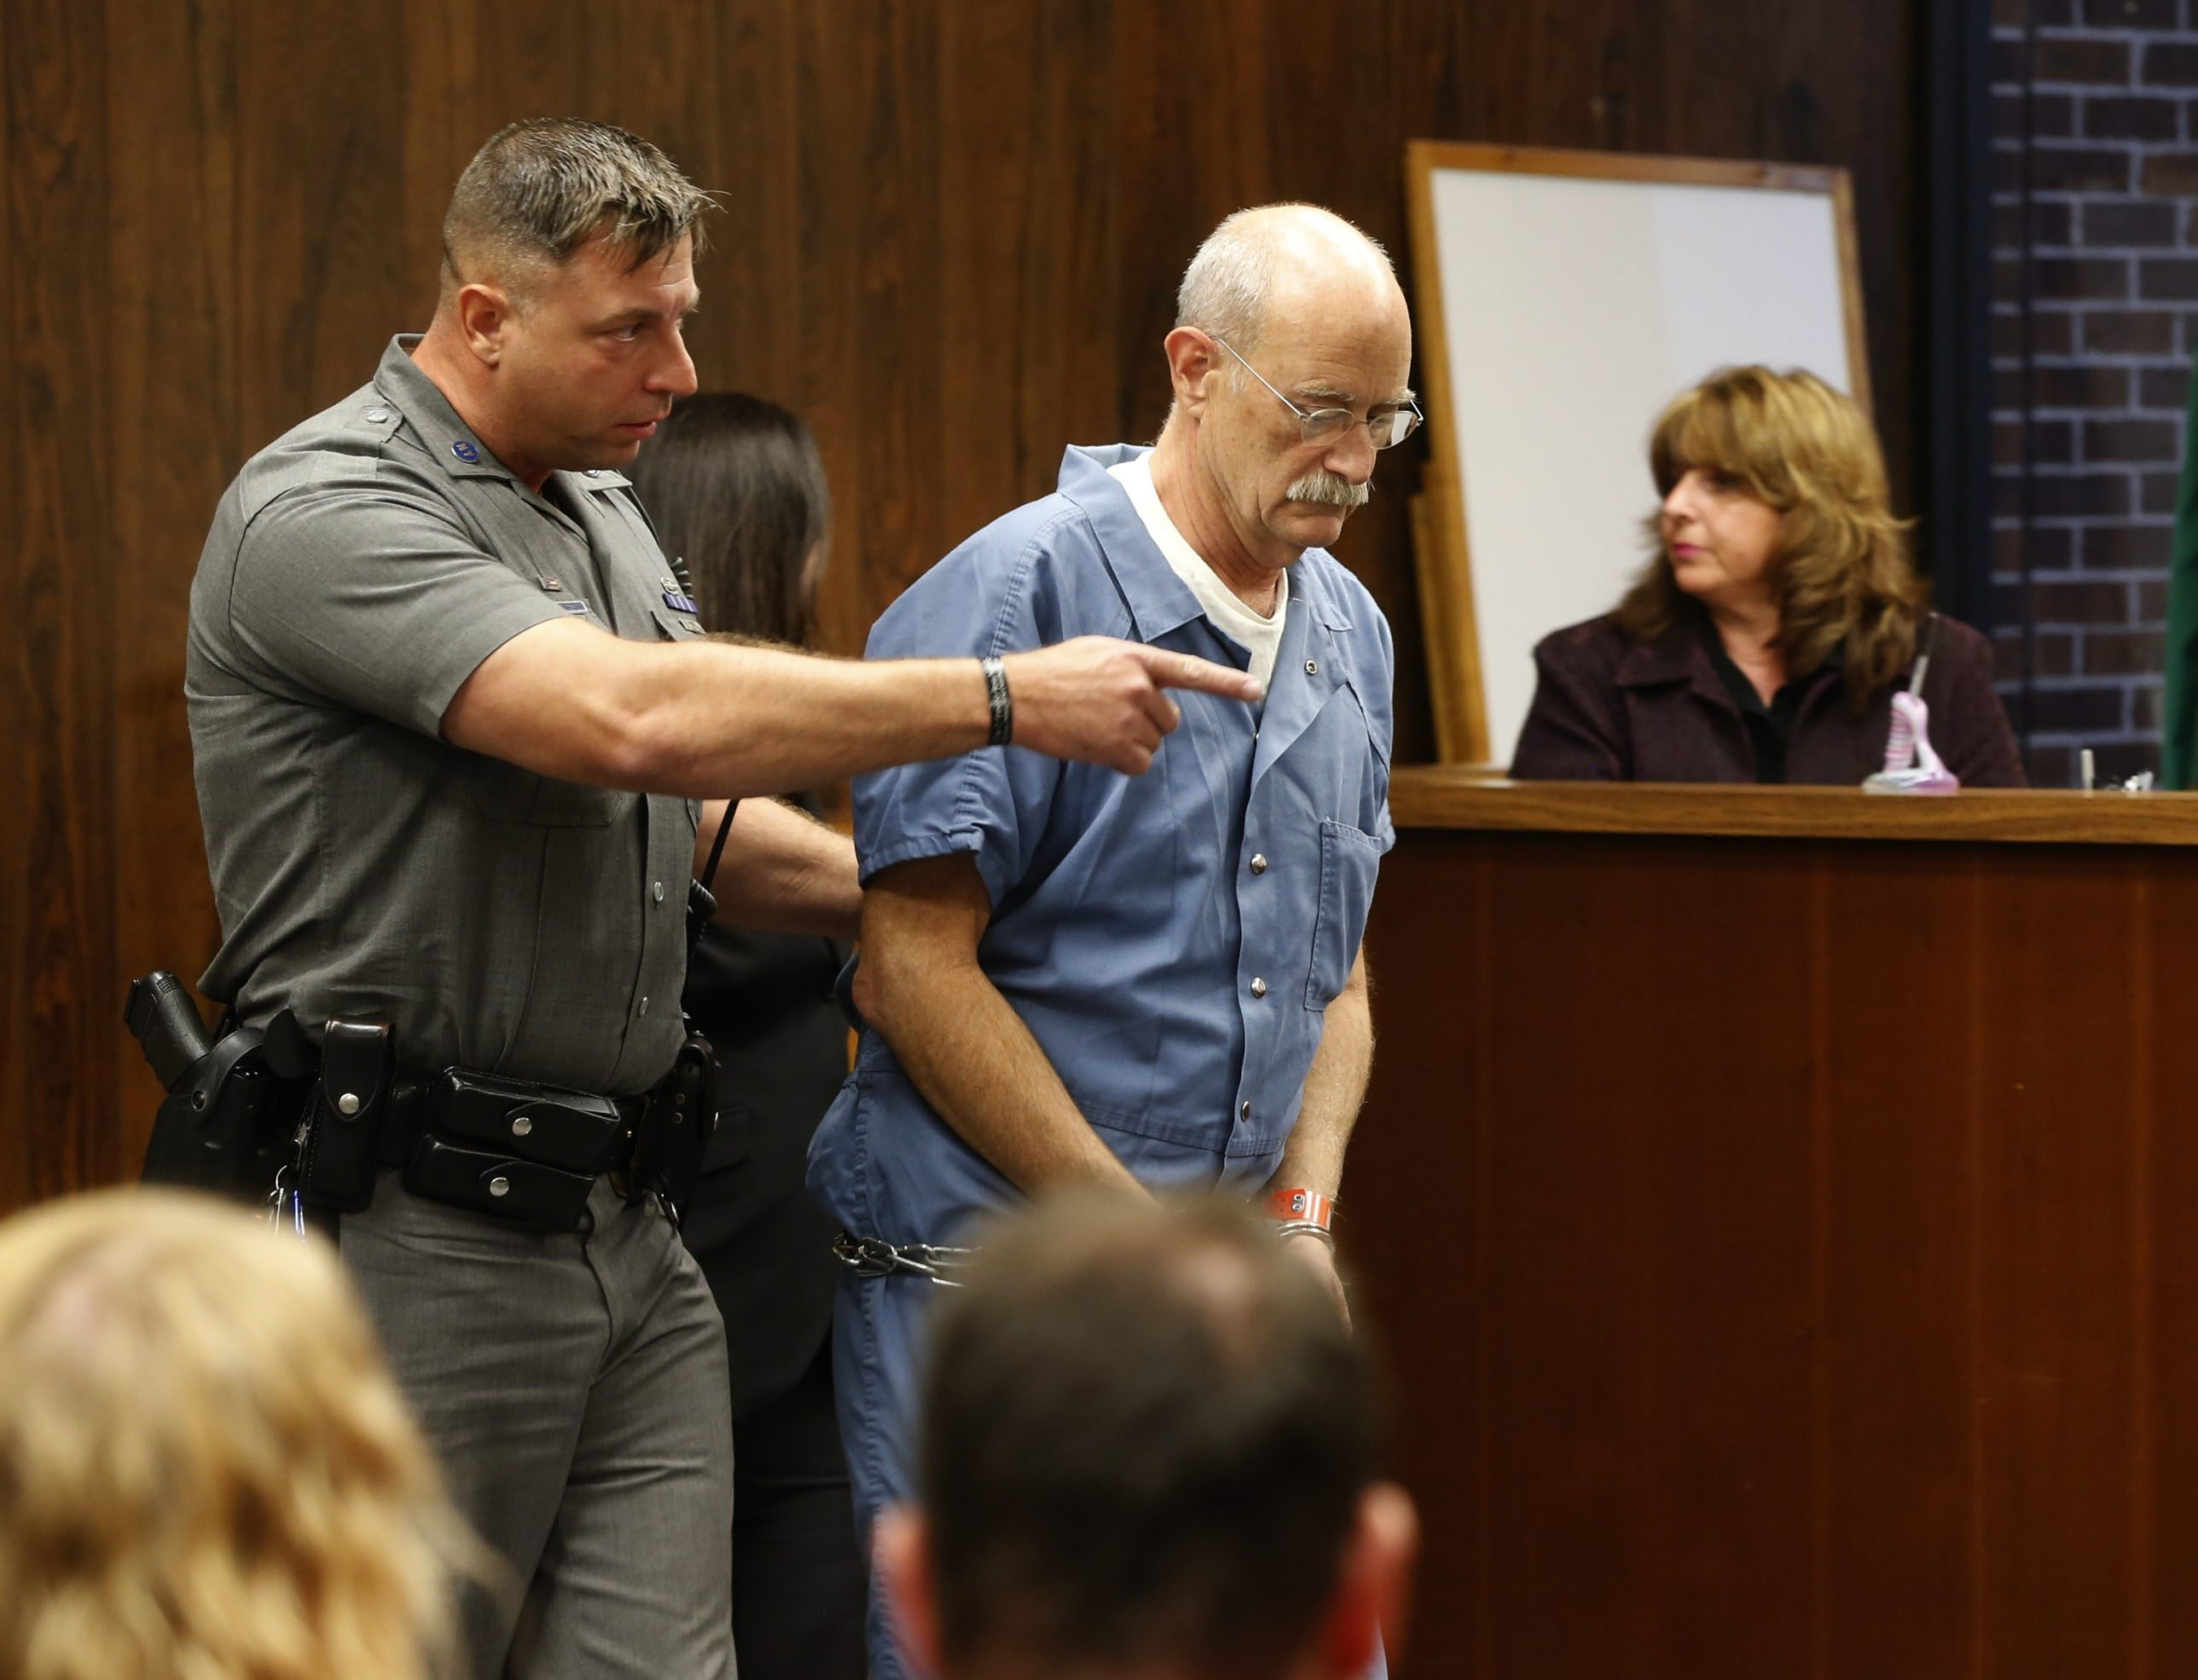 Iver Jay Phallen is set to go on trial in September. (Robert Kirkham/Buffalo News file photo)